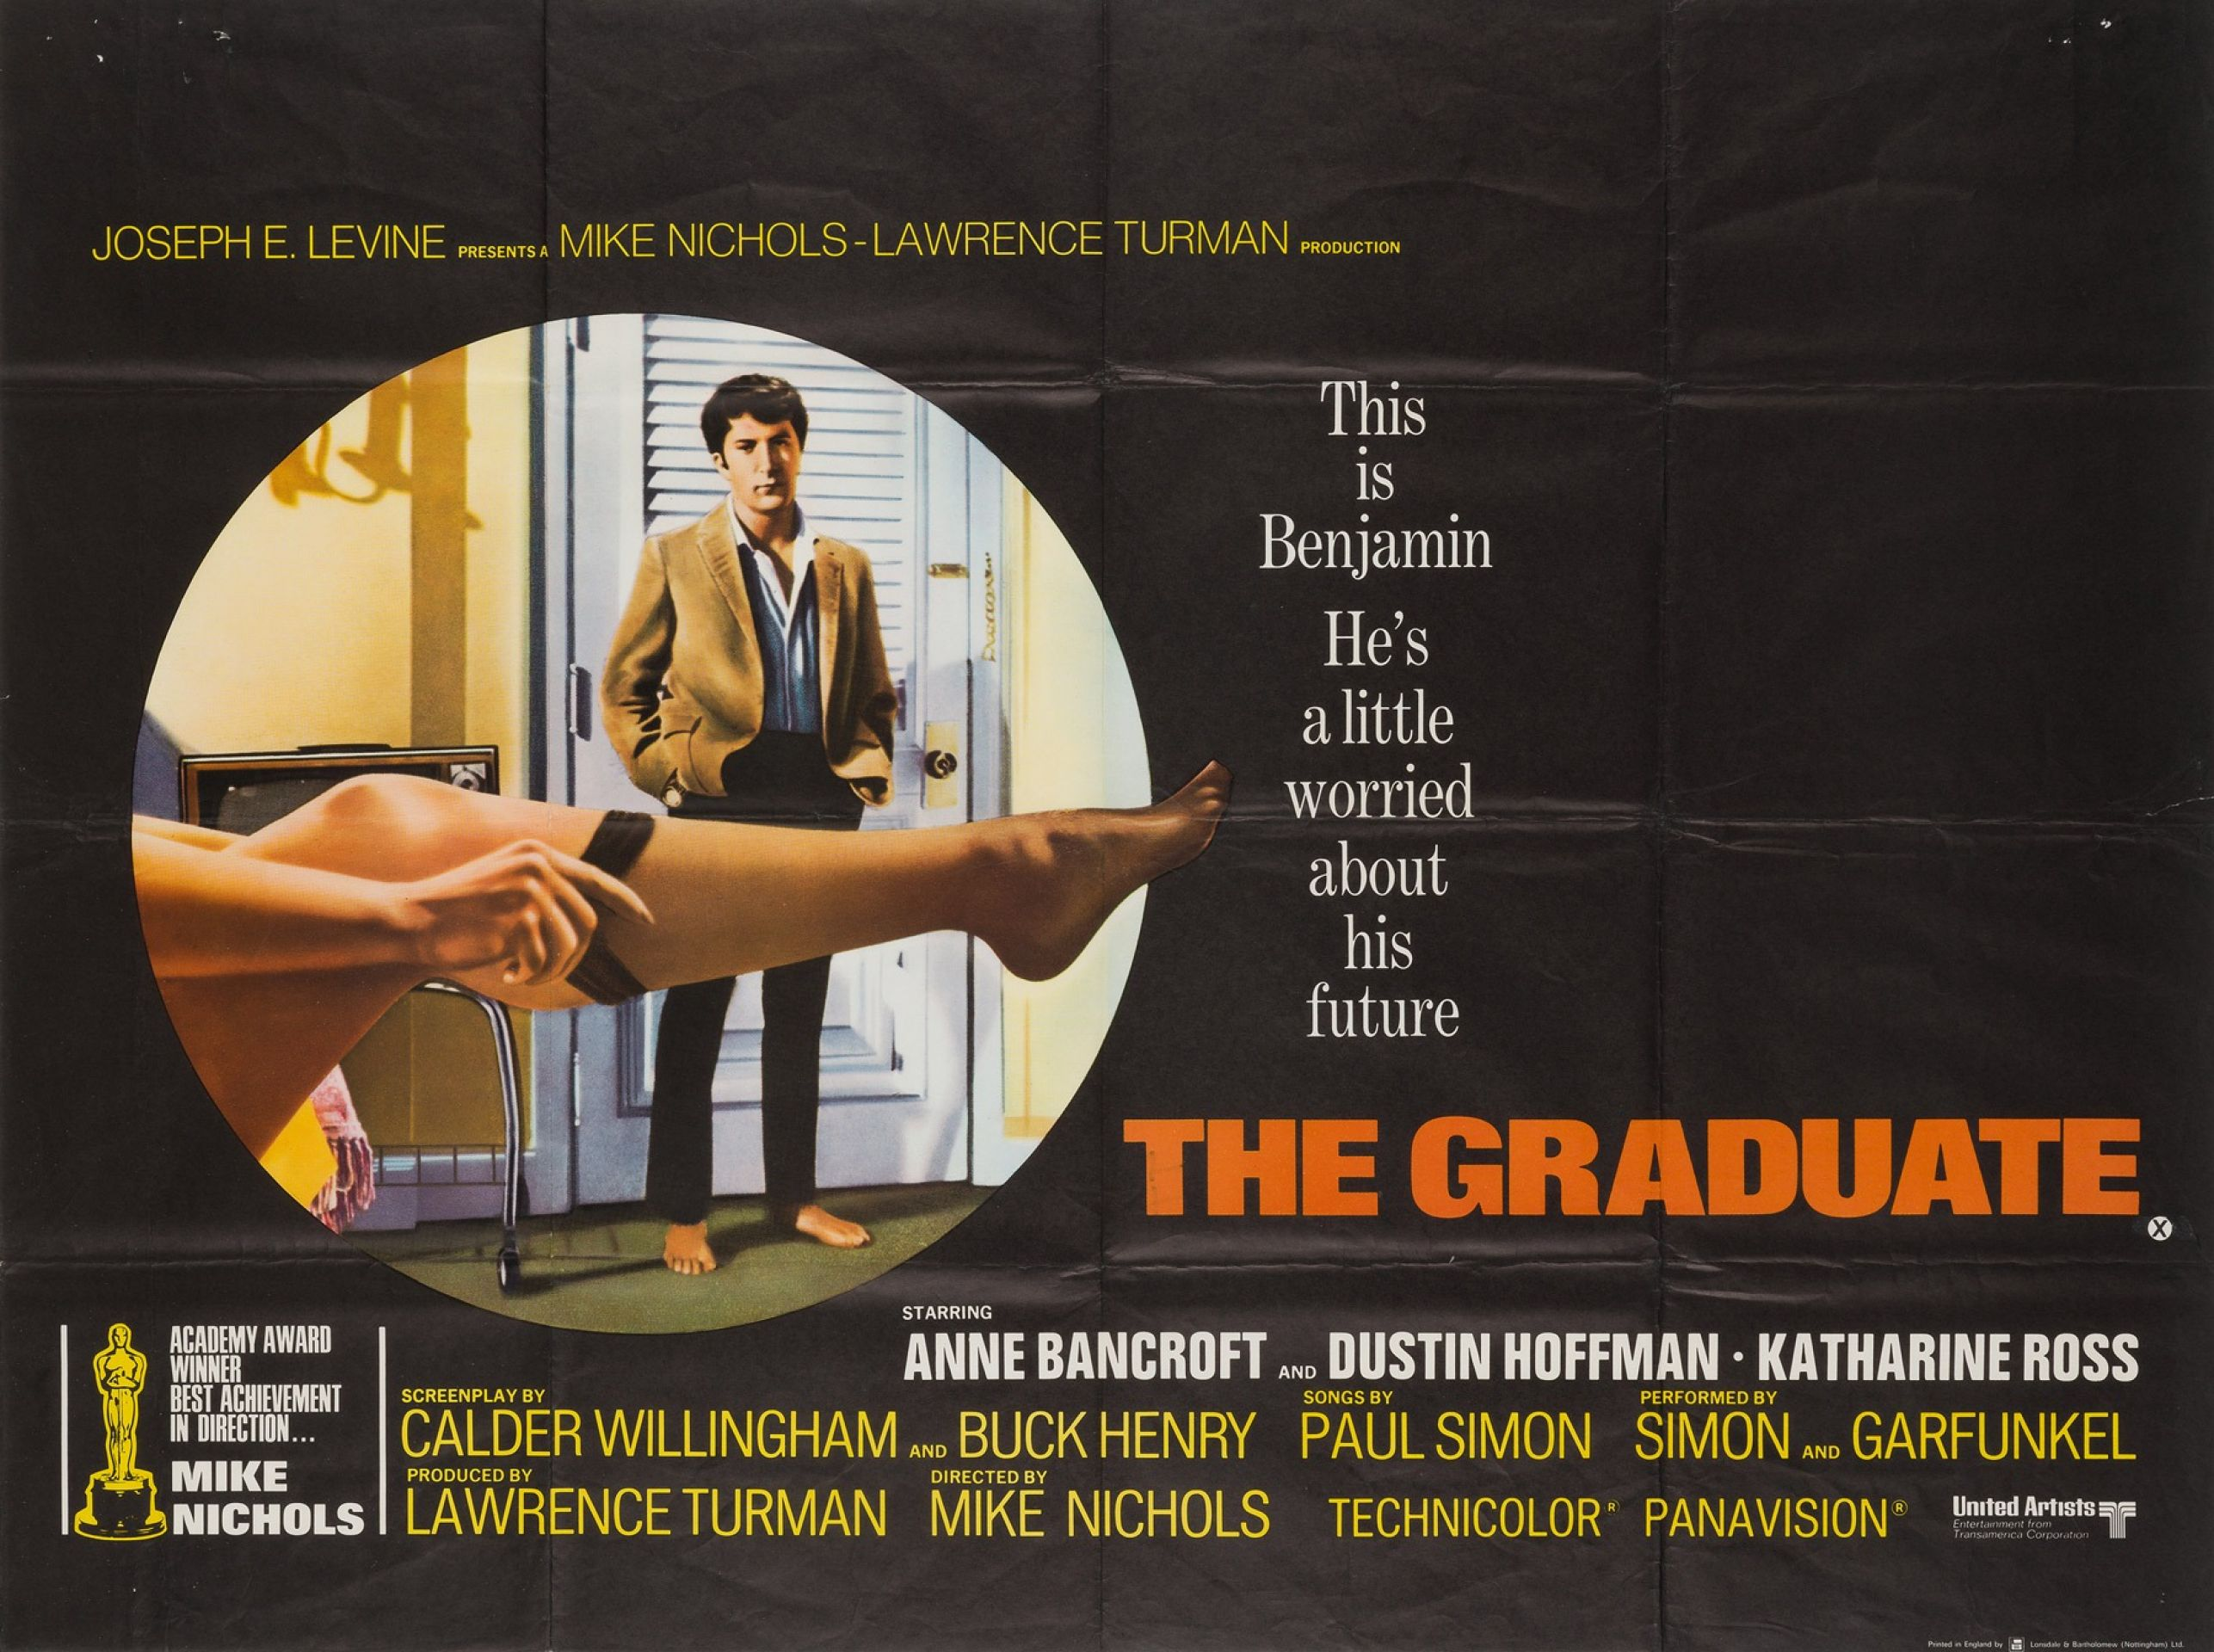 Original The Graduate 1967 British Film Movie Poster, Dustin Hoffman